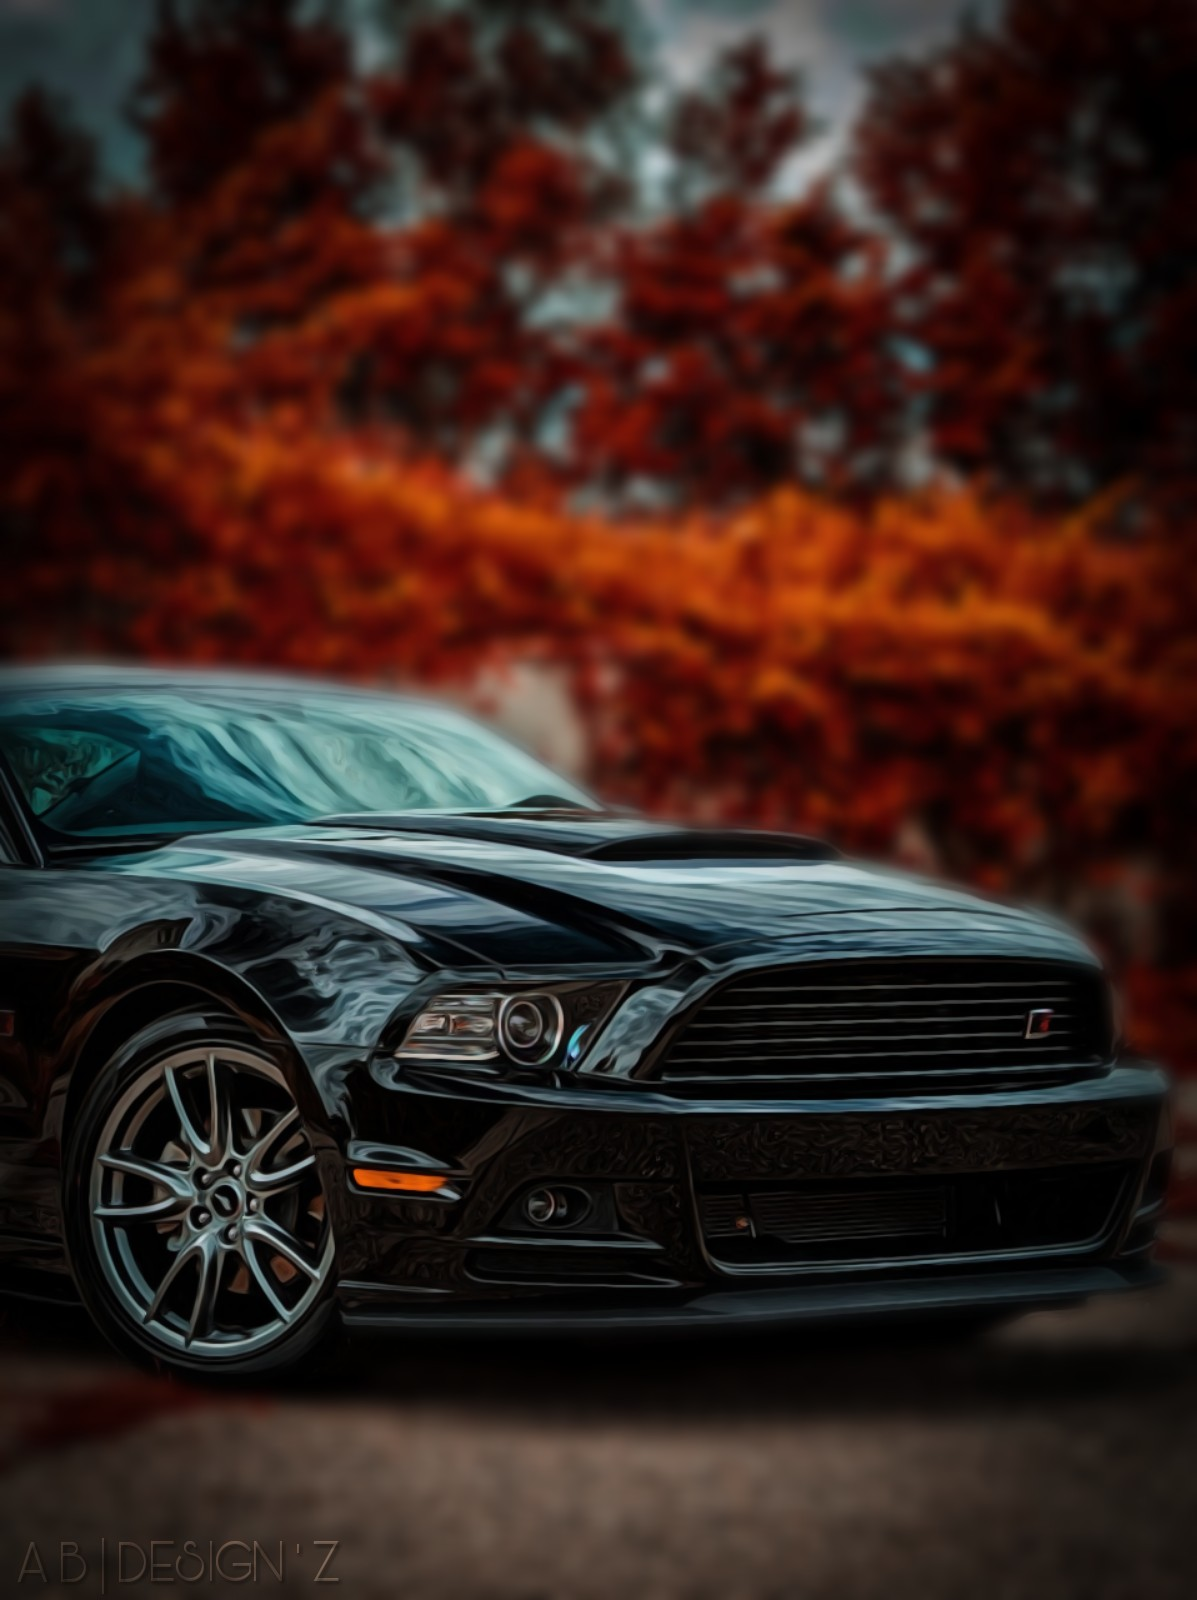 Car Background Similar Hashtags Picsart No waste of time to finding an expert and accurate editor for. car background similar hashtags picsart